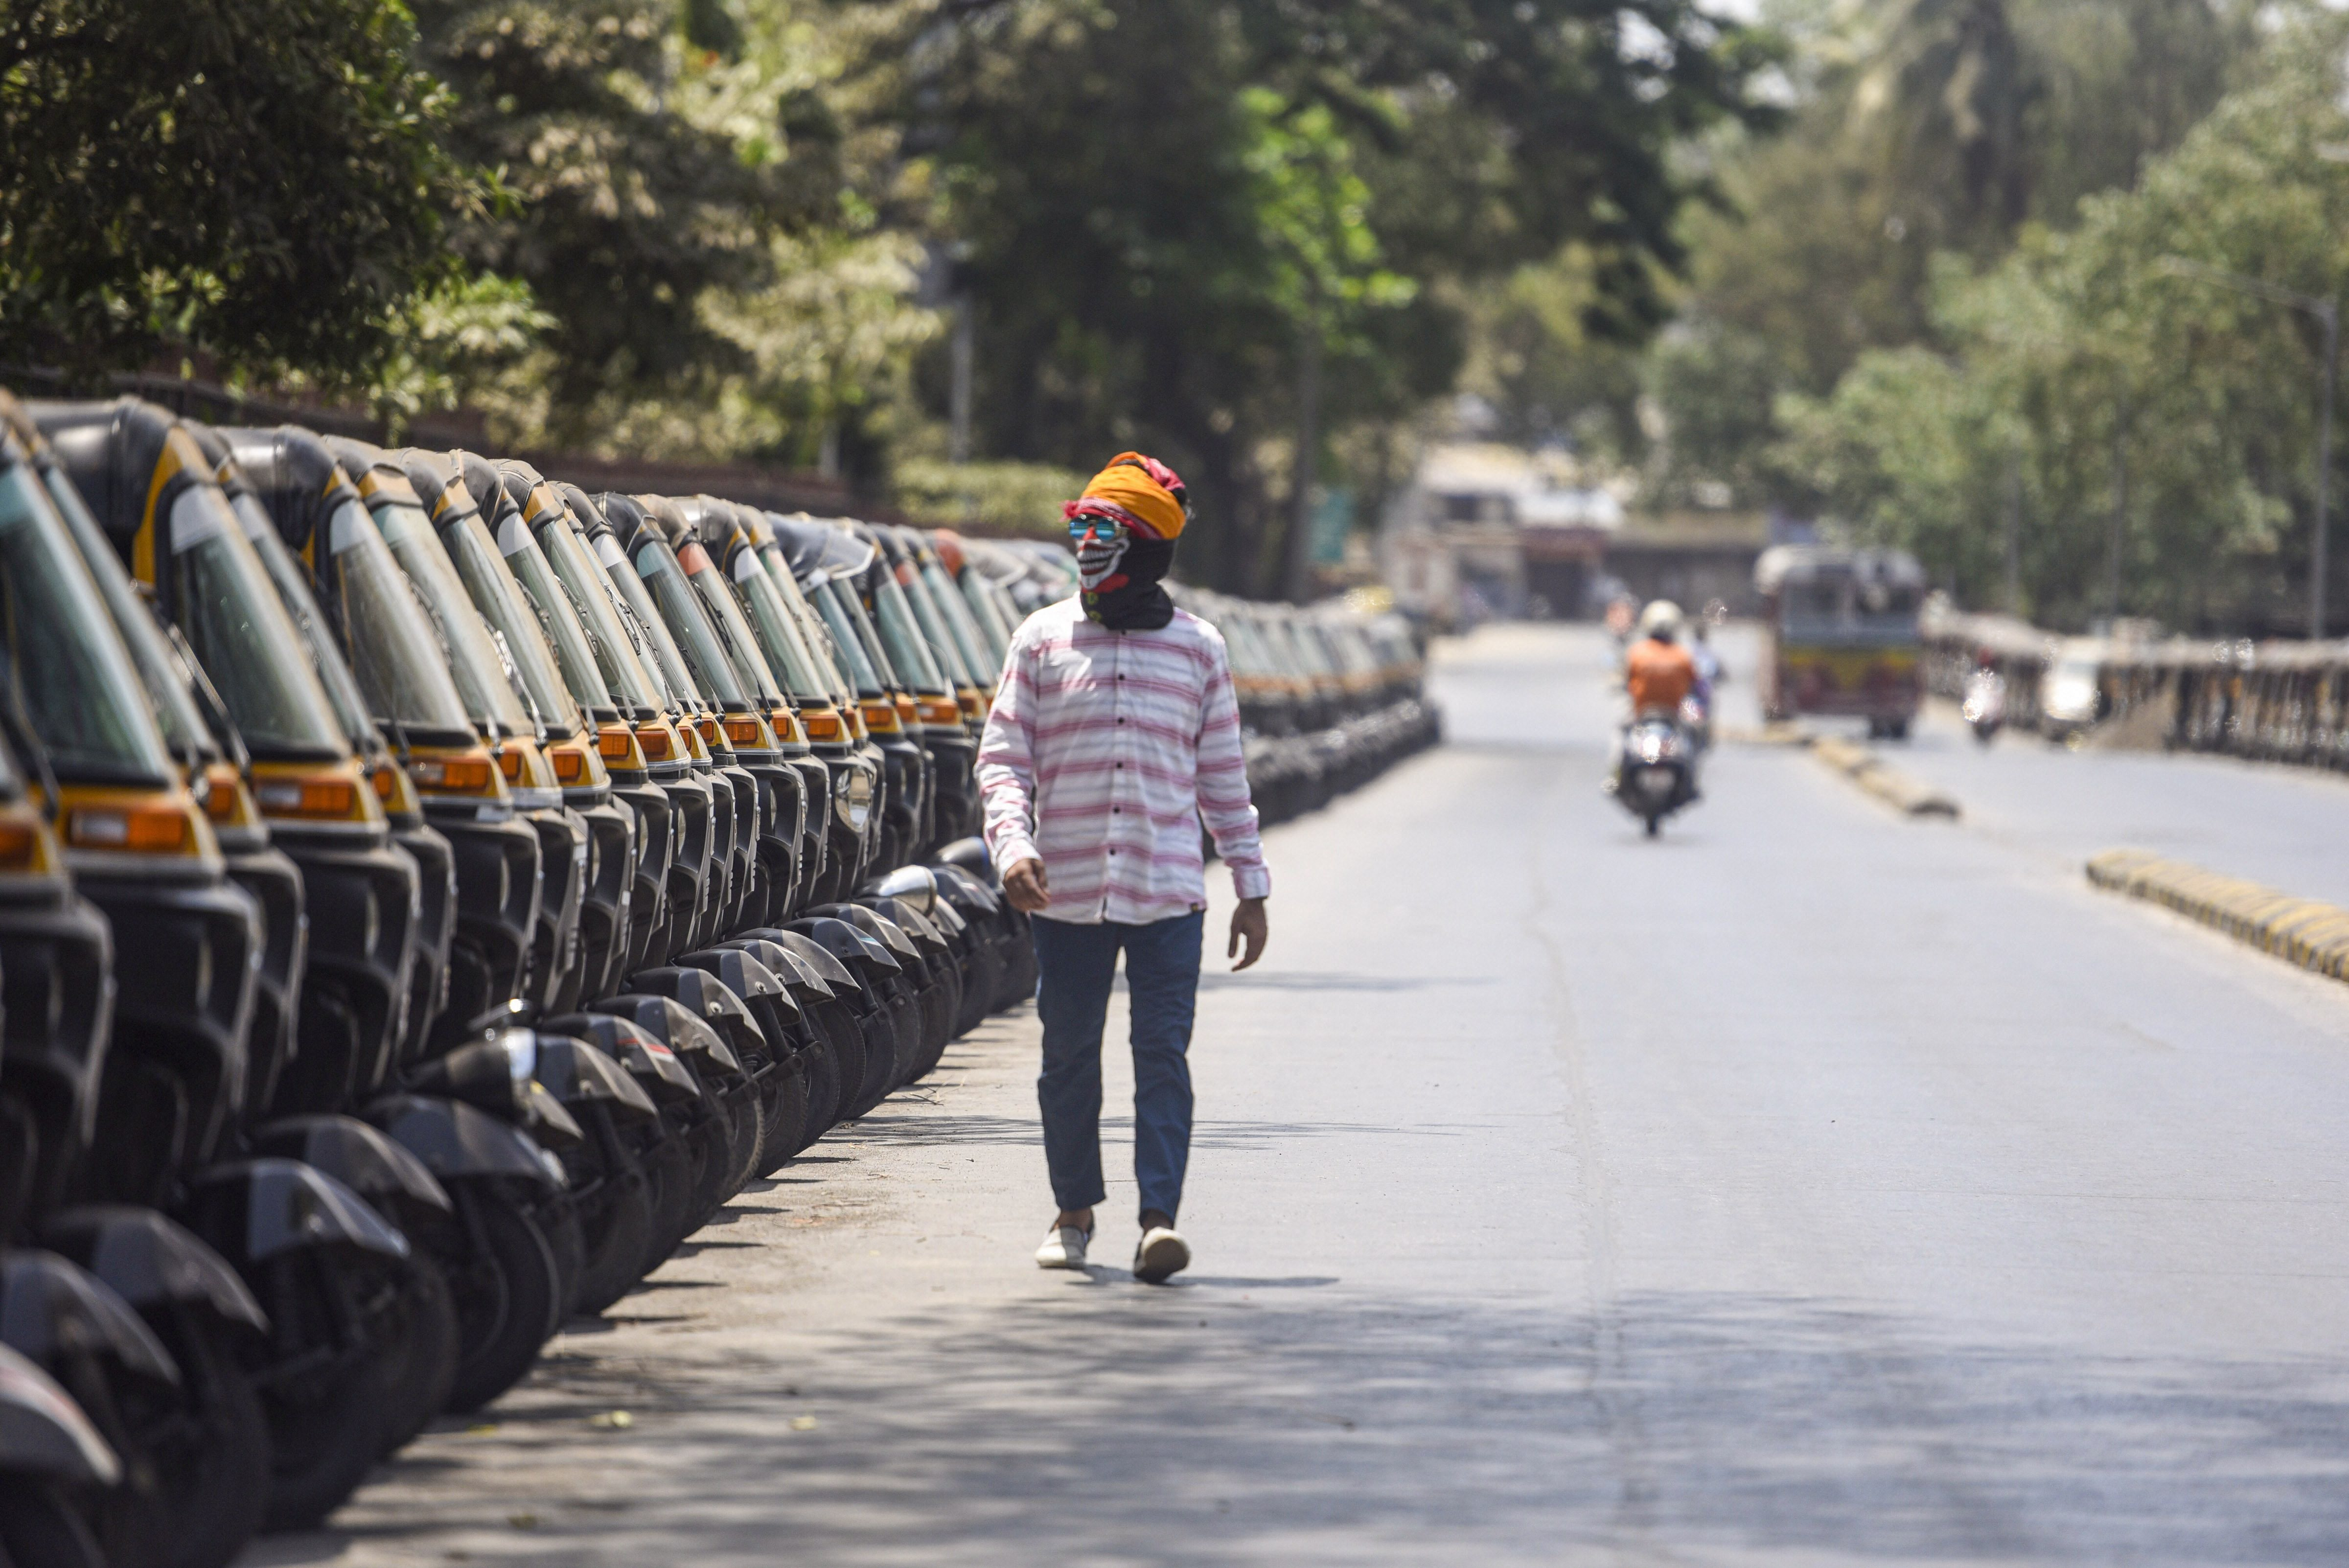 A pedestrian wearing a mask walks past parked auto rickshaws during the nationwide lockdown at Kandivali in Mumbai on Friday.